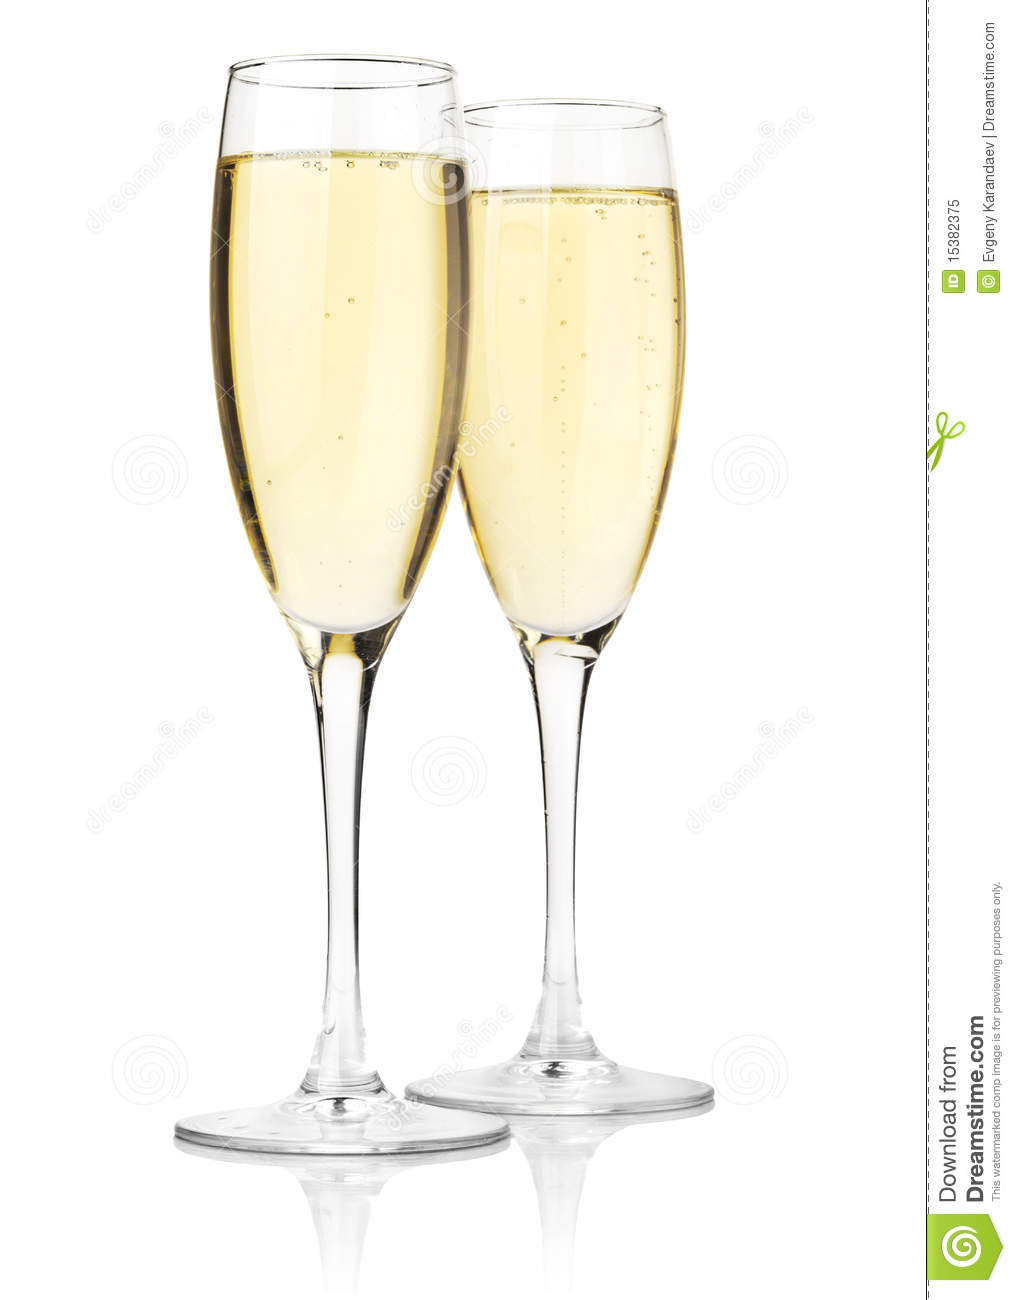 two glasses of champagne royalty free stock photo image